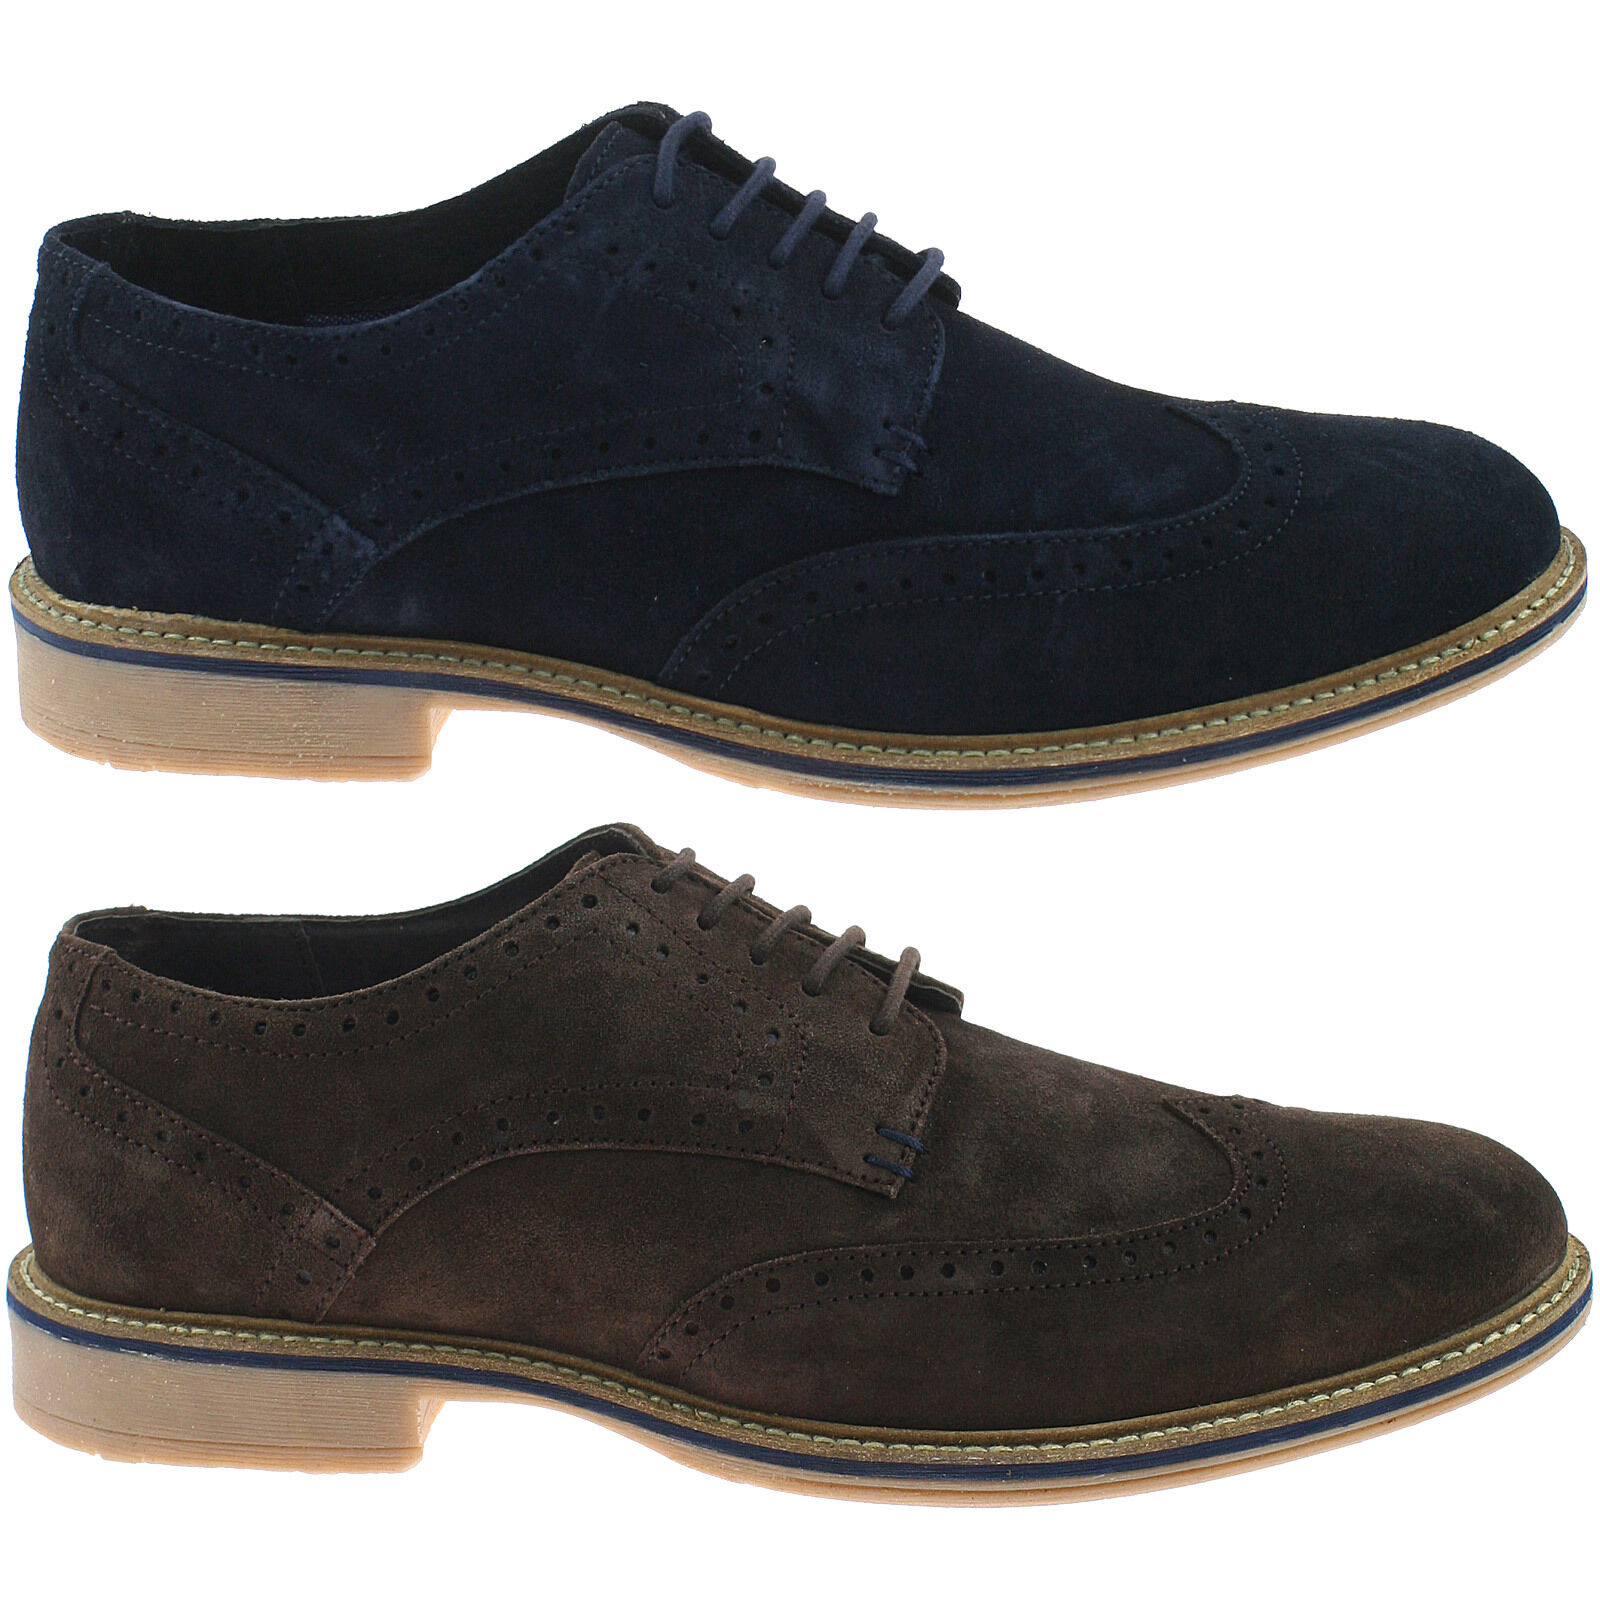 MENS ROAMERS SUEDE LEATHER BROGUE SHOES SIZE CASUAL LACE UP M617 KD